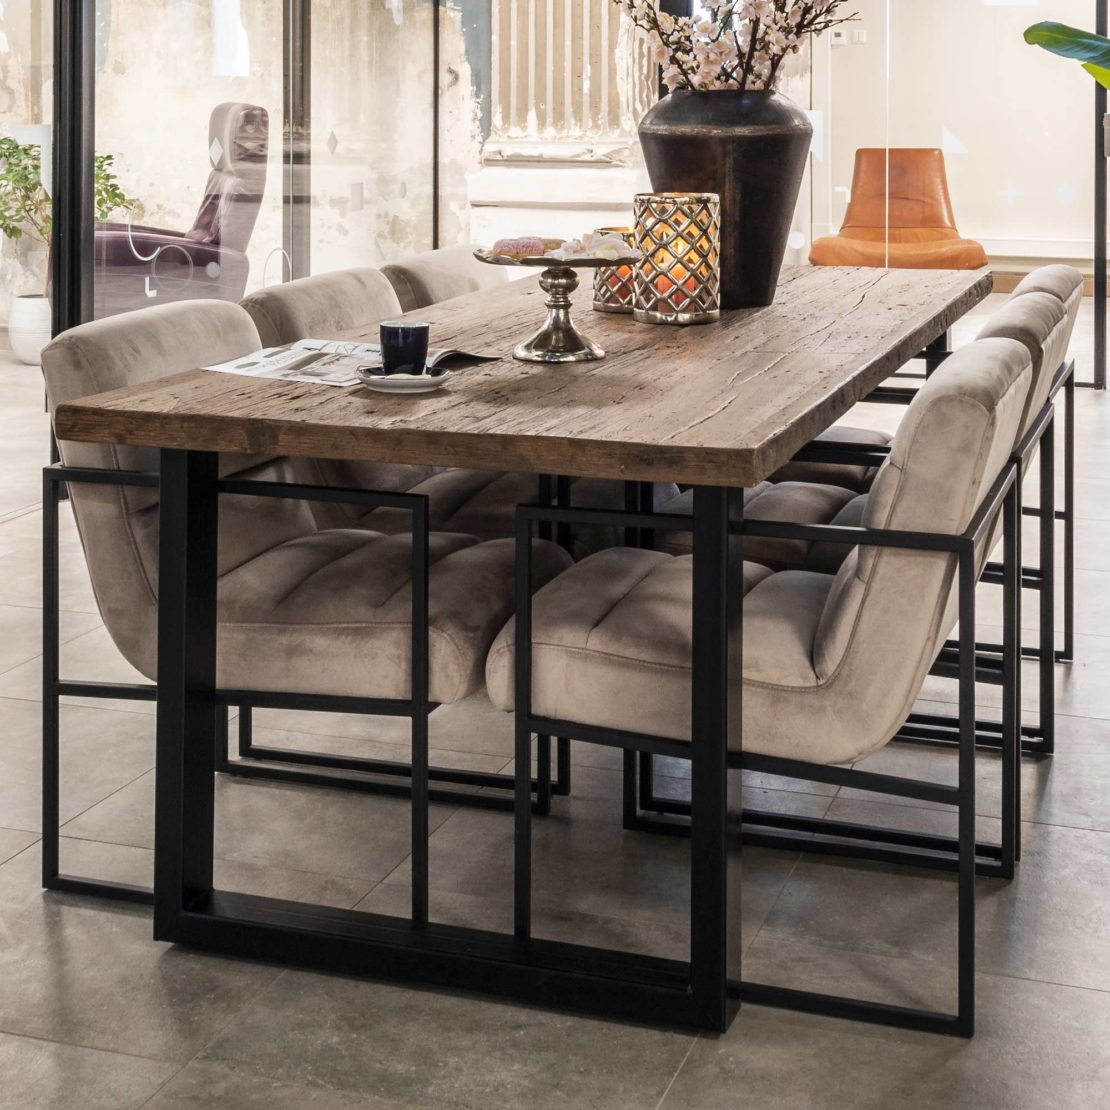 show home furniture, Industrial Recycled Wood Dining Table